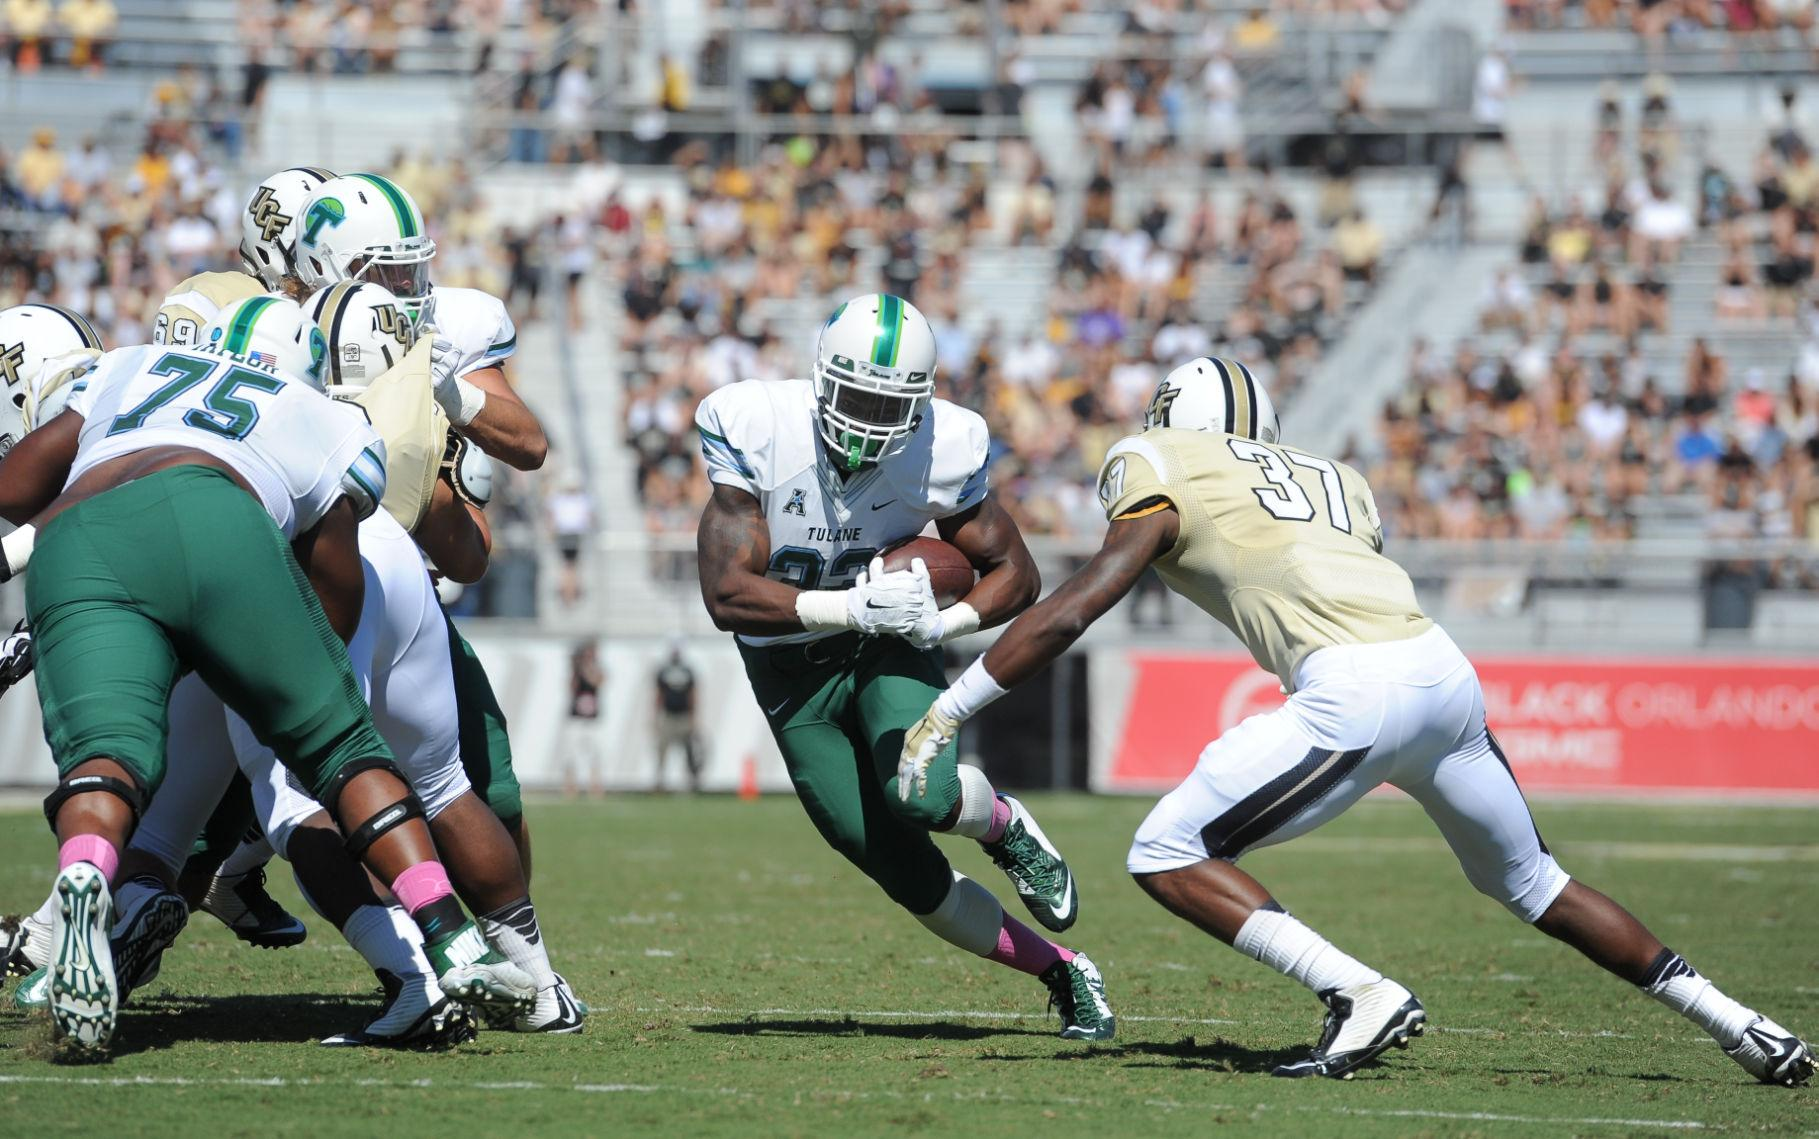 Redshirt freshman Lazedrick Thomspon rushes the ball in a 20-13 loss against Central Florida in Orlando, Florida. Thompson rushed for 63 yards on 12 attempts in the loss.